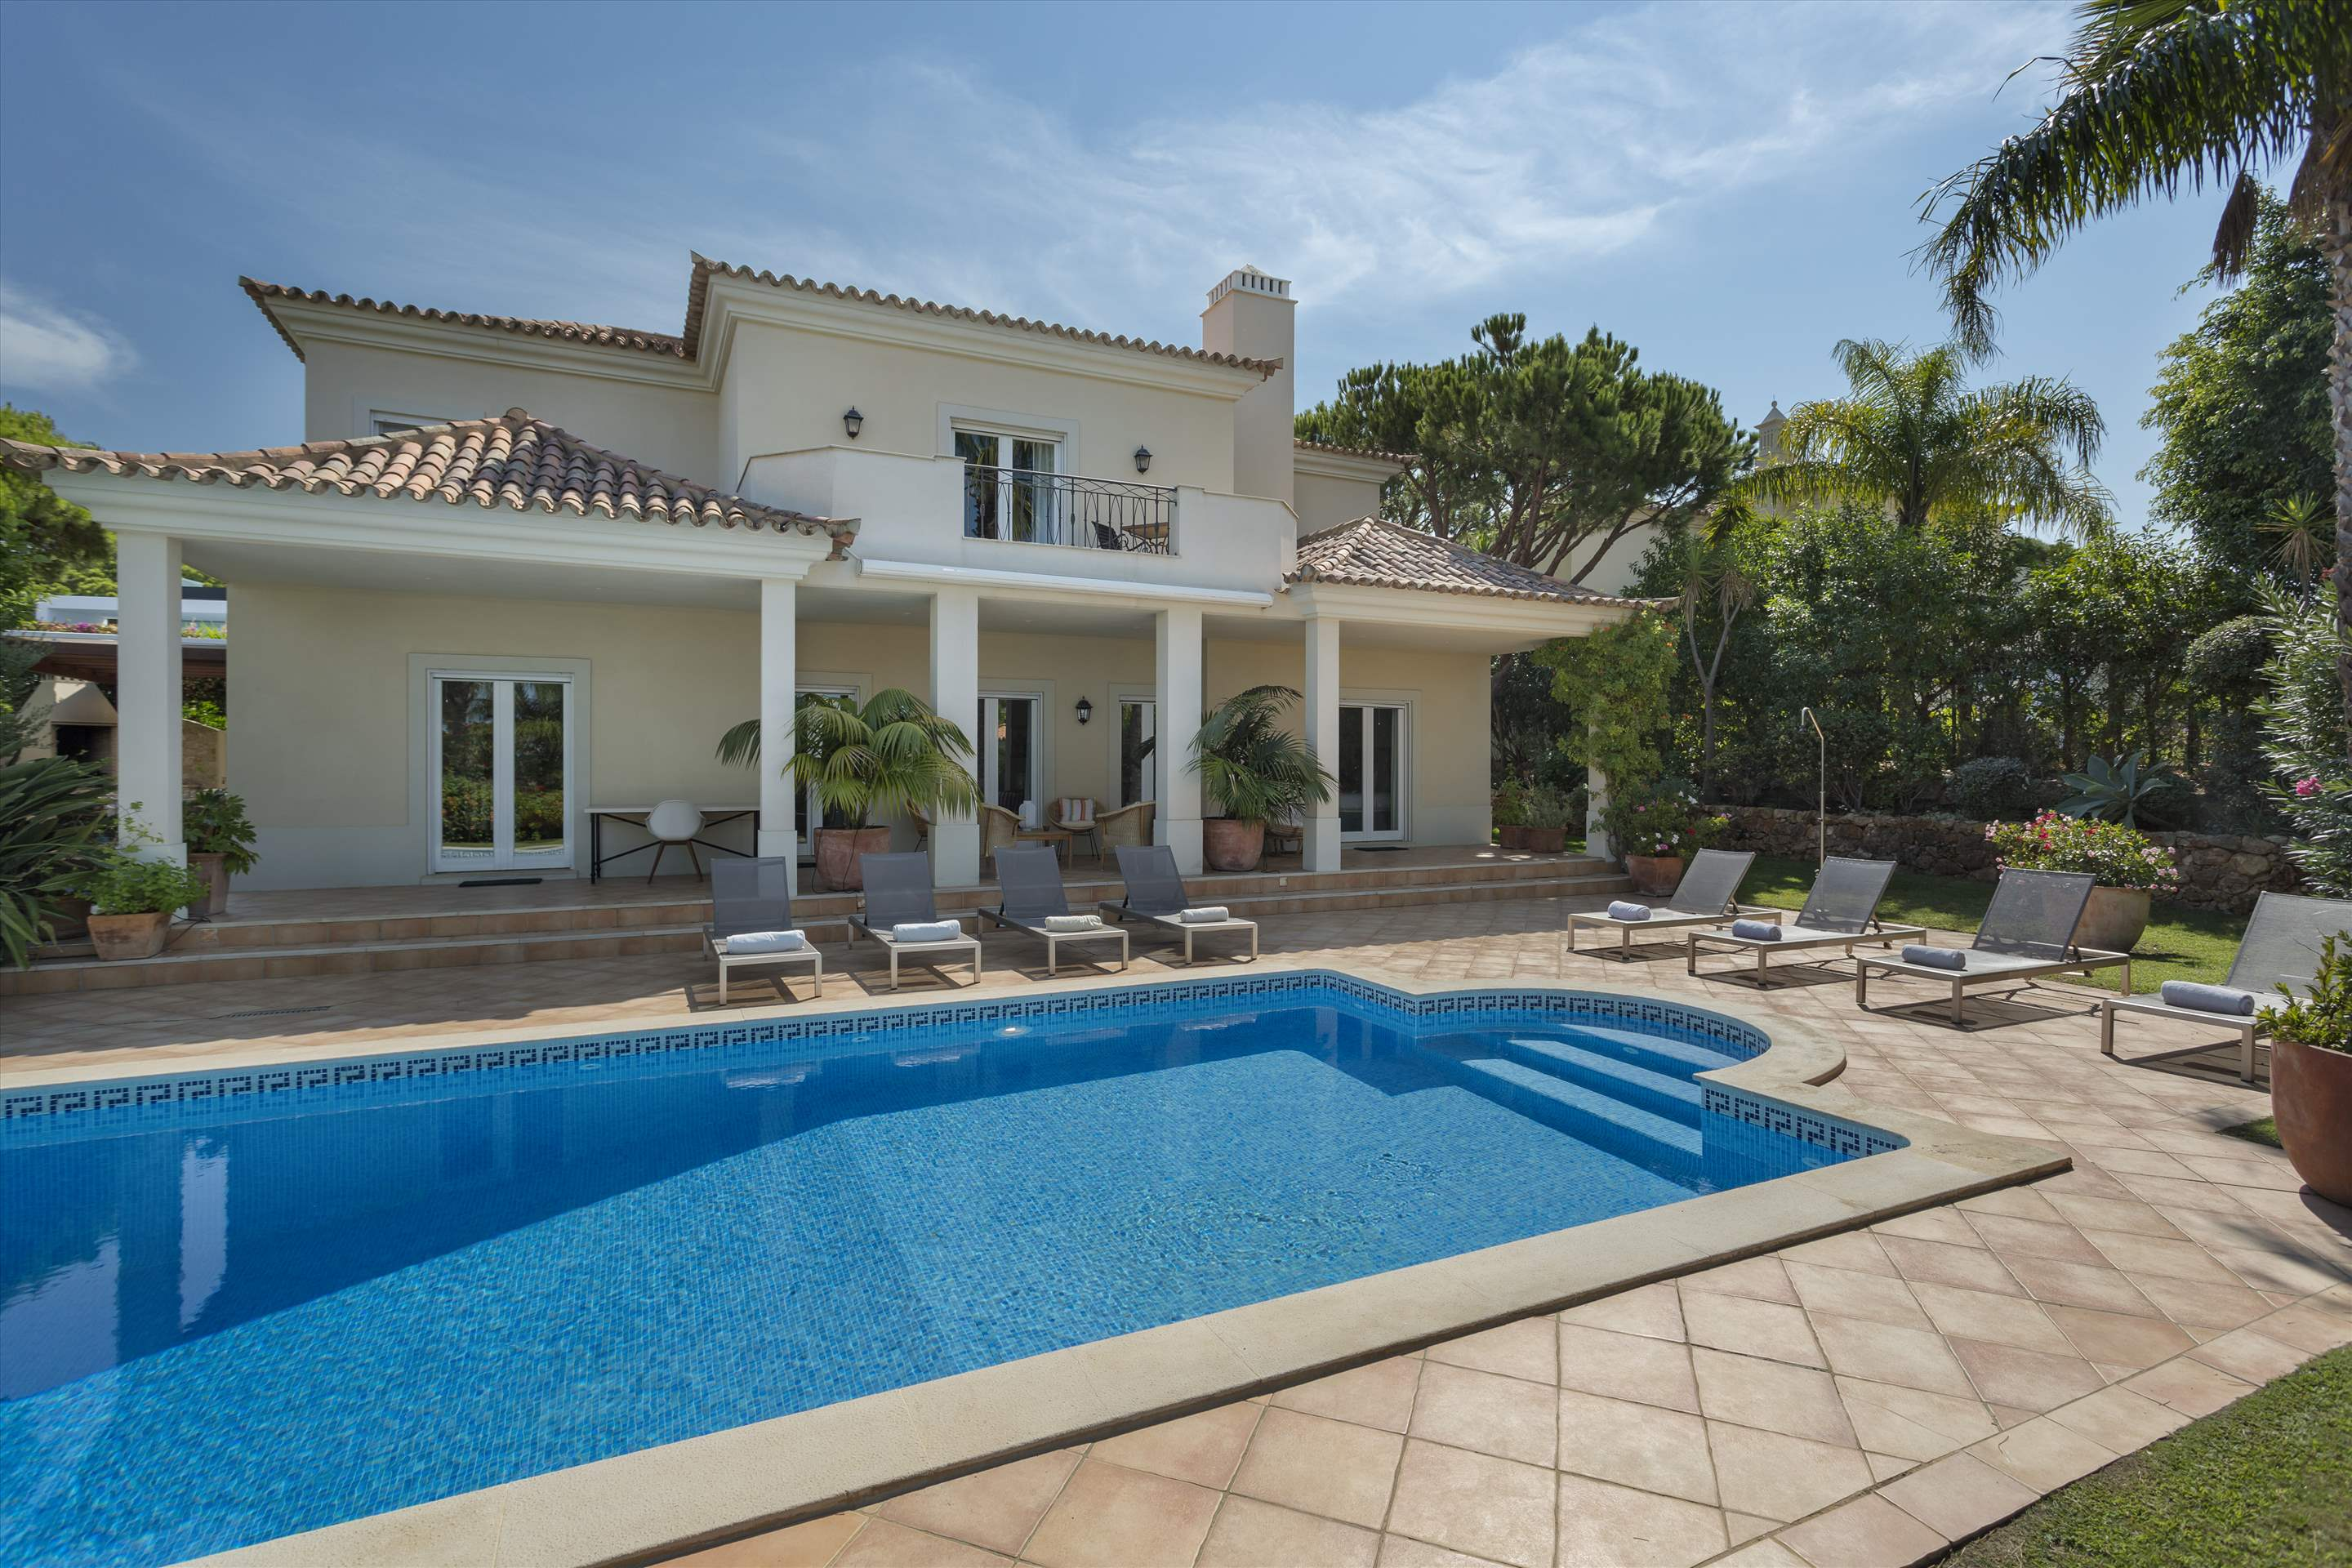 Villa Liza, 4 bedroom villa in Vale do Lobo, Algarve